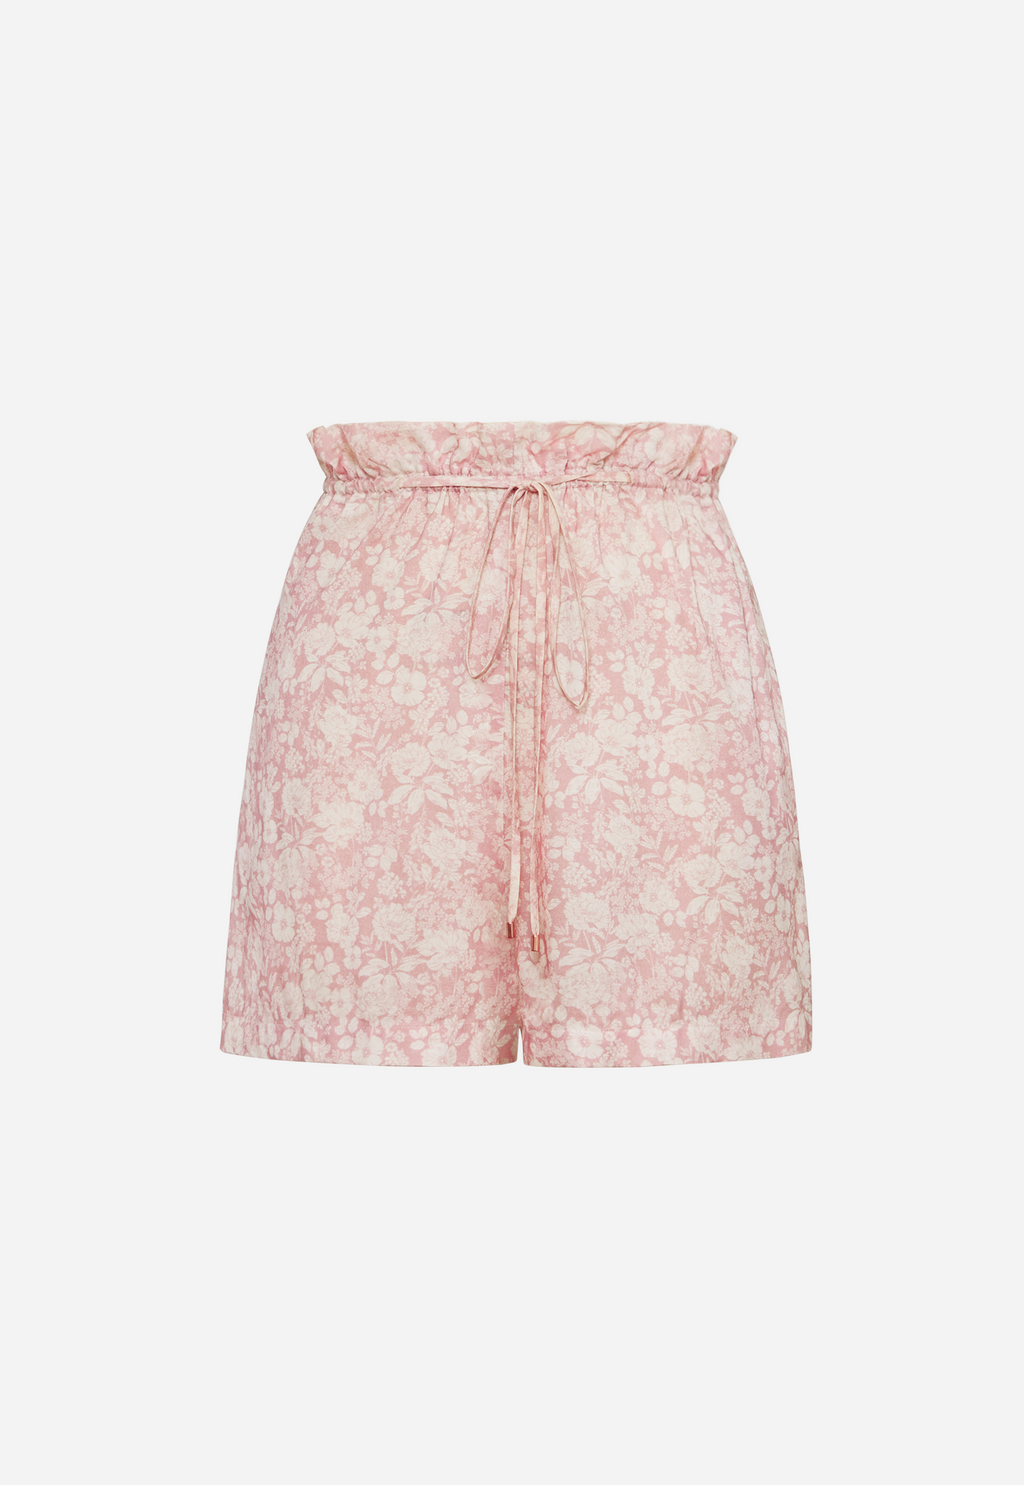 6 Shore Road Dockyard Women's High Waist Pink Floral Shorts in XS, S, M, L - Summer 2018 Collection